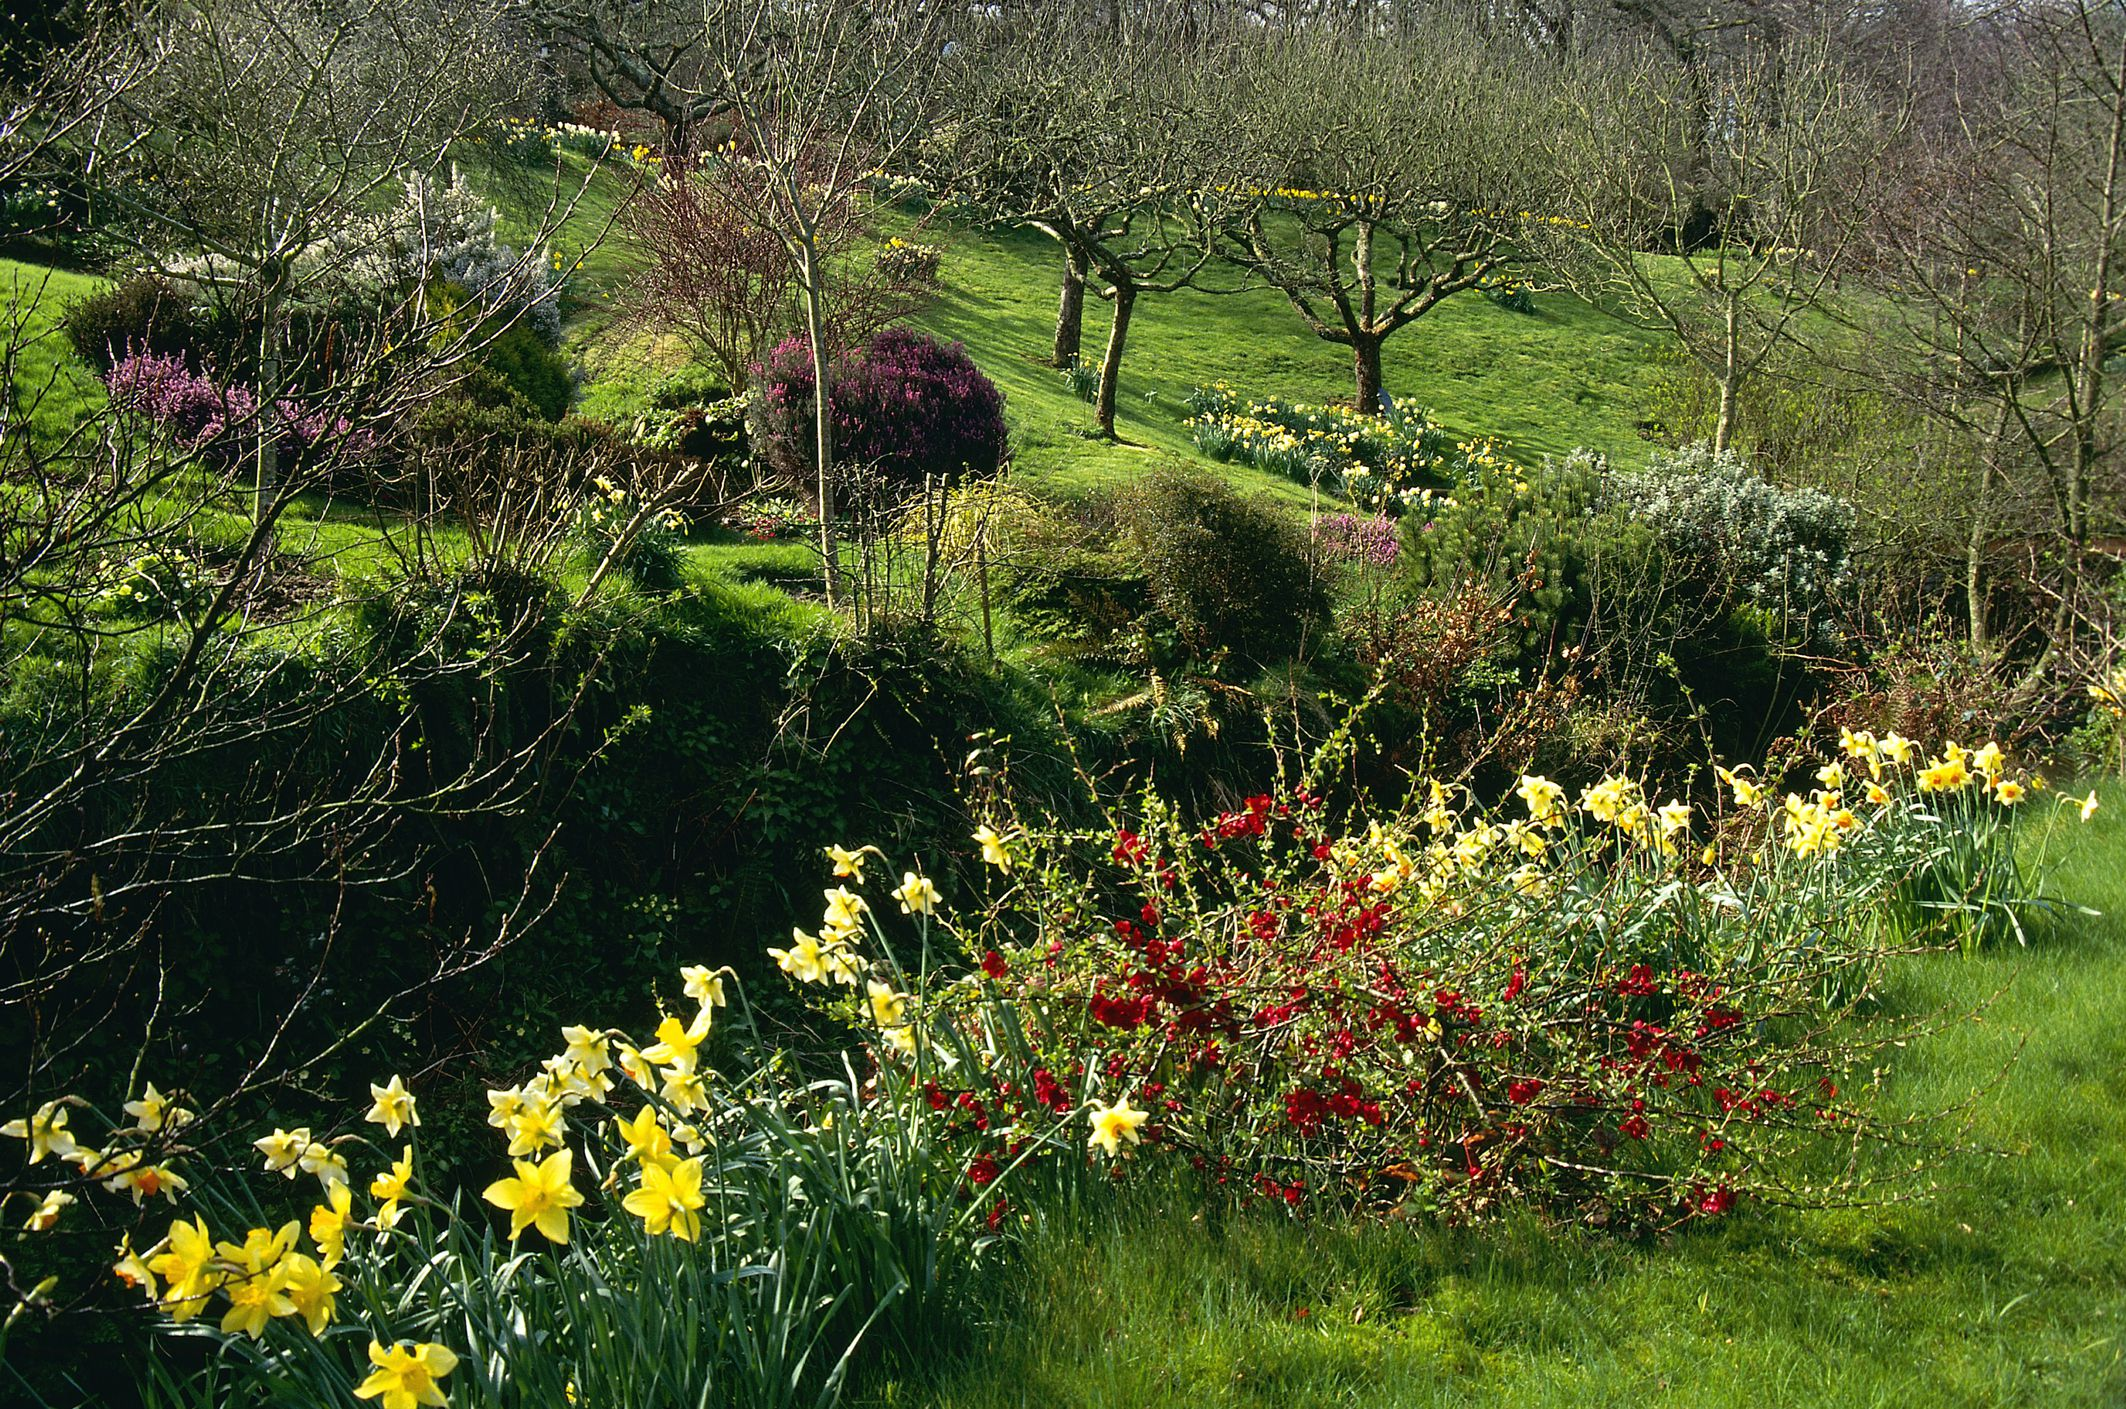 spring garden early spring grassy bank, chaenomeles speciosa, narcissus, view to erica bed & orchard trees, march, docton mill, devon